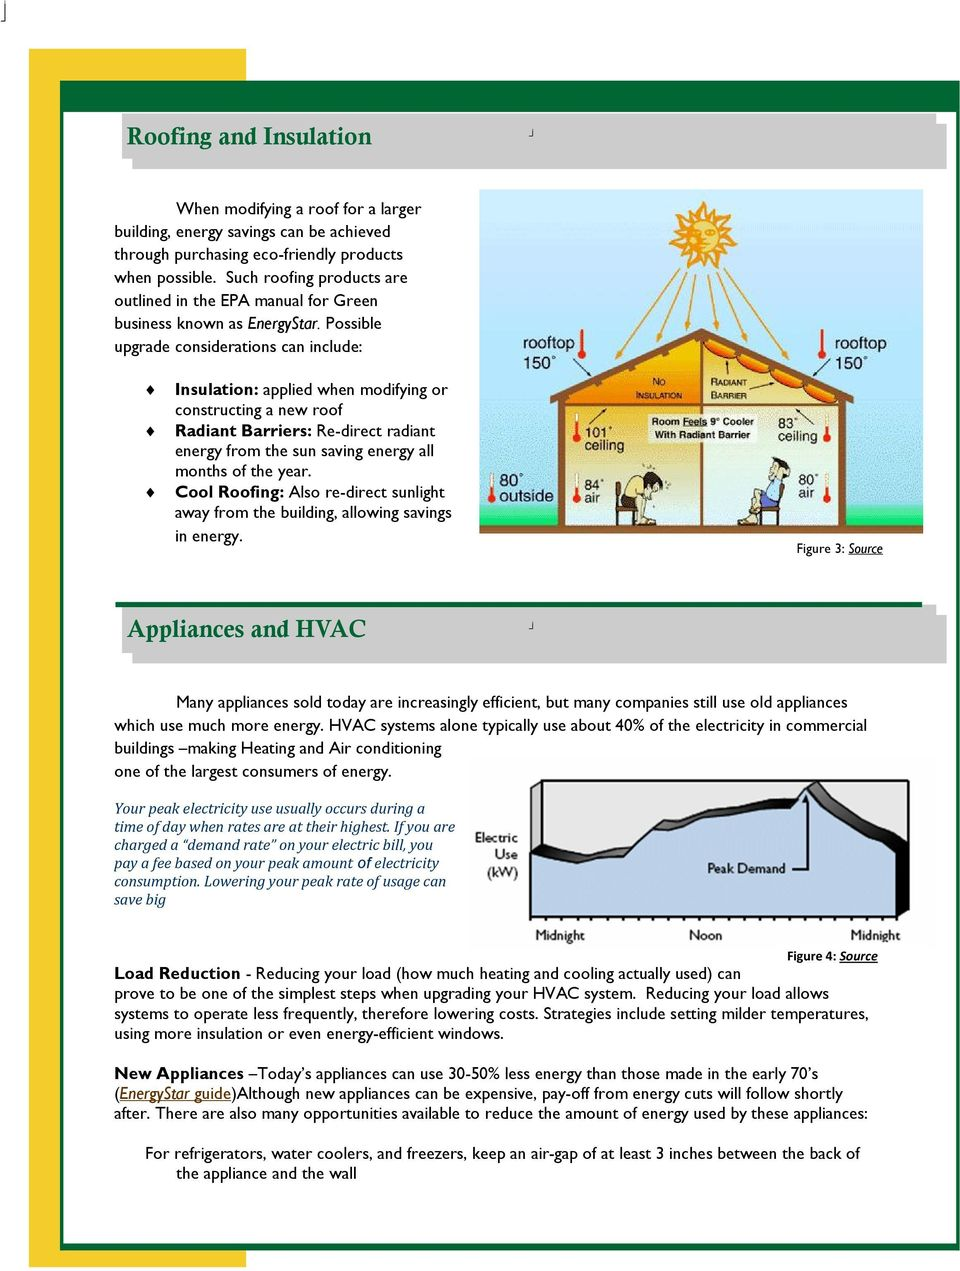 Possible upgrade considerations can include: Insulation: applied when modifying or constructing a new roof Radiant Barriers: Re-direct radiant energy from the sun saving energy all months of the year.